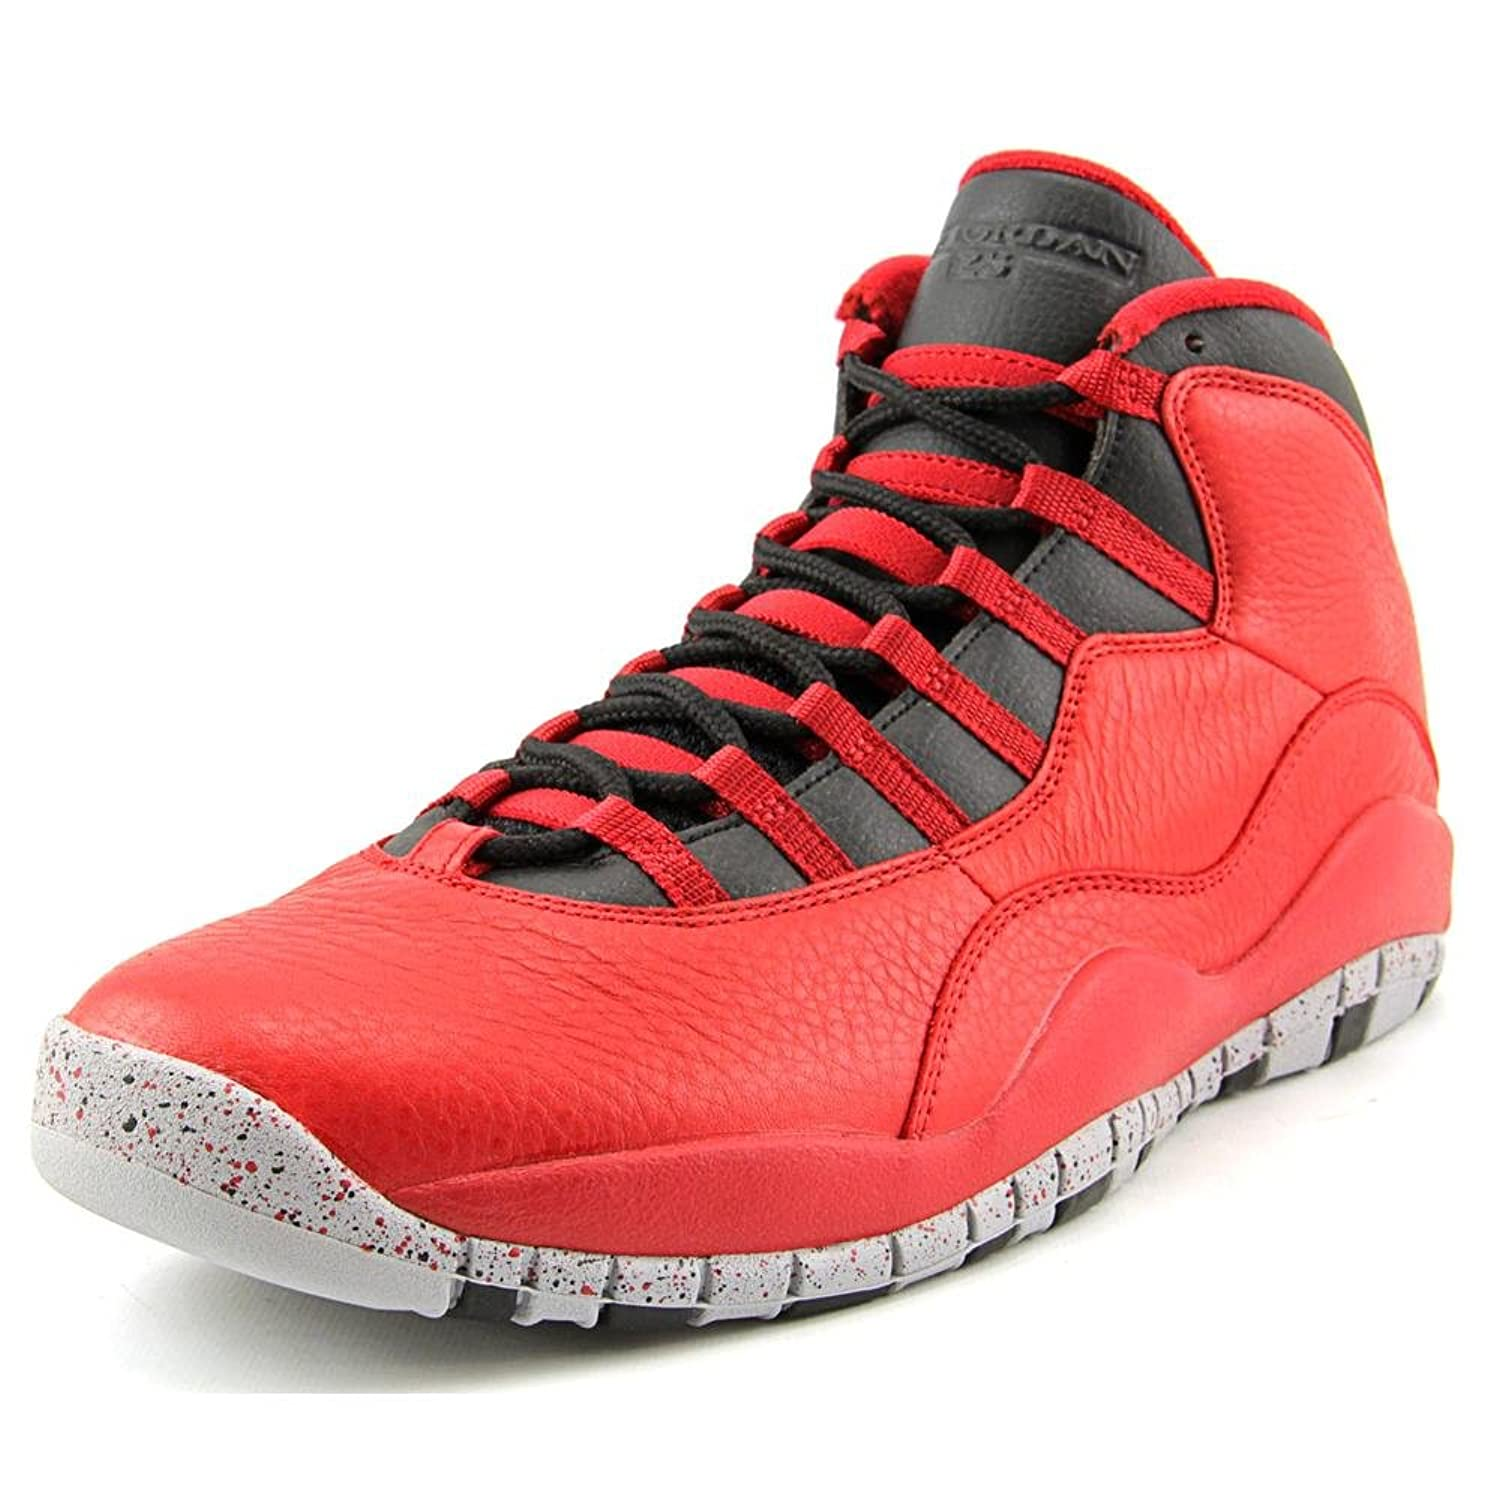 Air Jordan 10 X Retro Byen Pakke Nyc Finans c6cYf36At